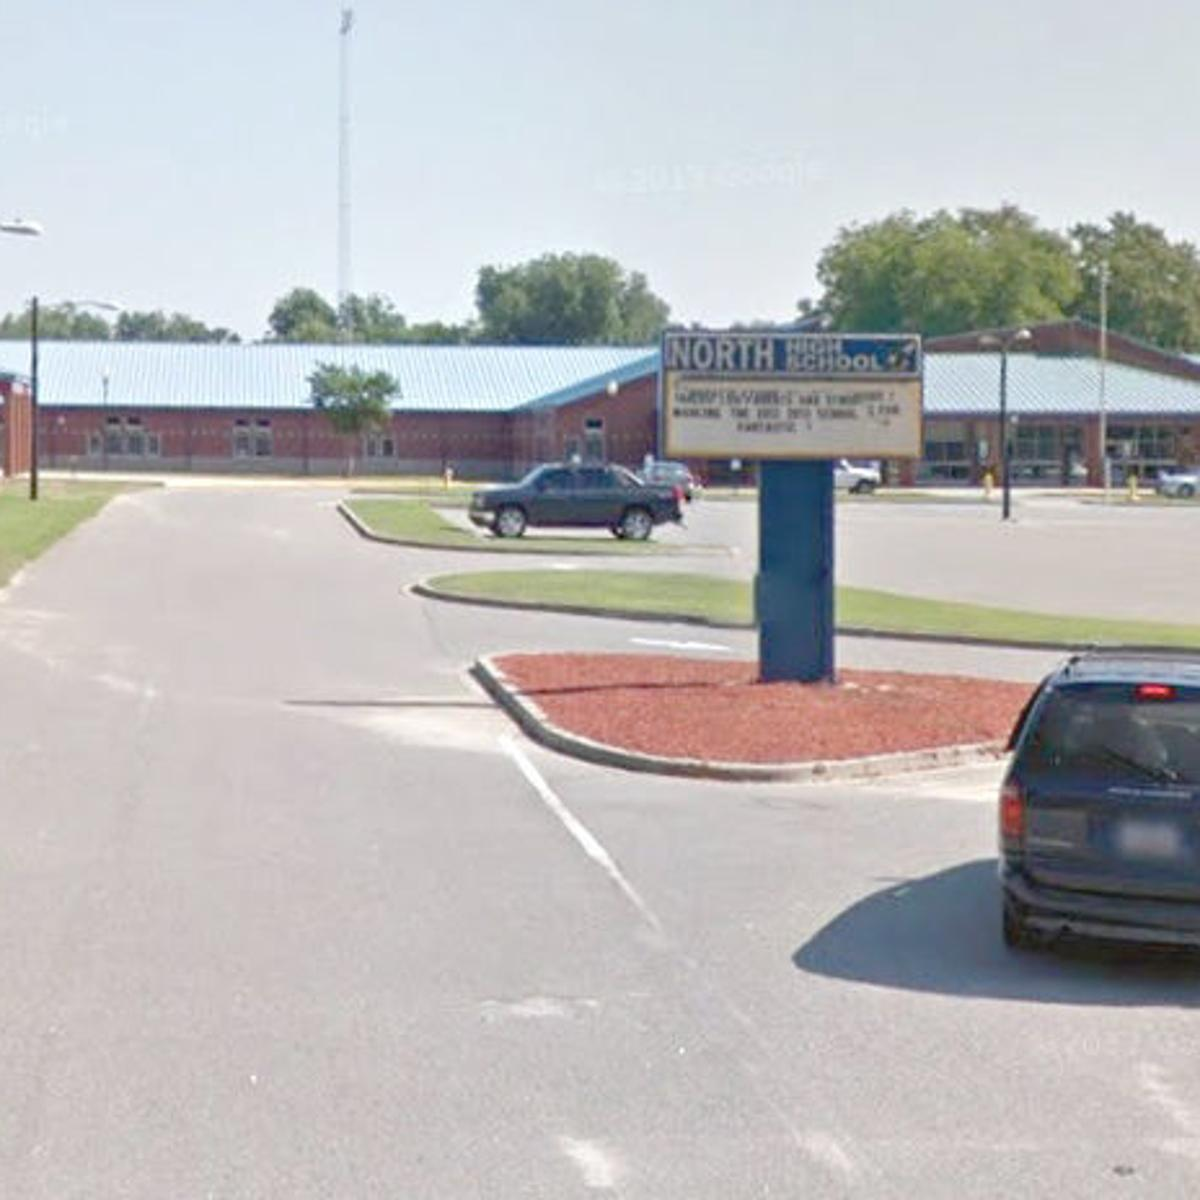 North Middle/High School placed on lockdown after threatening call